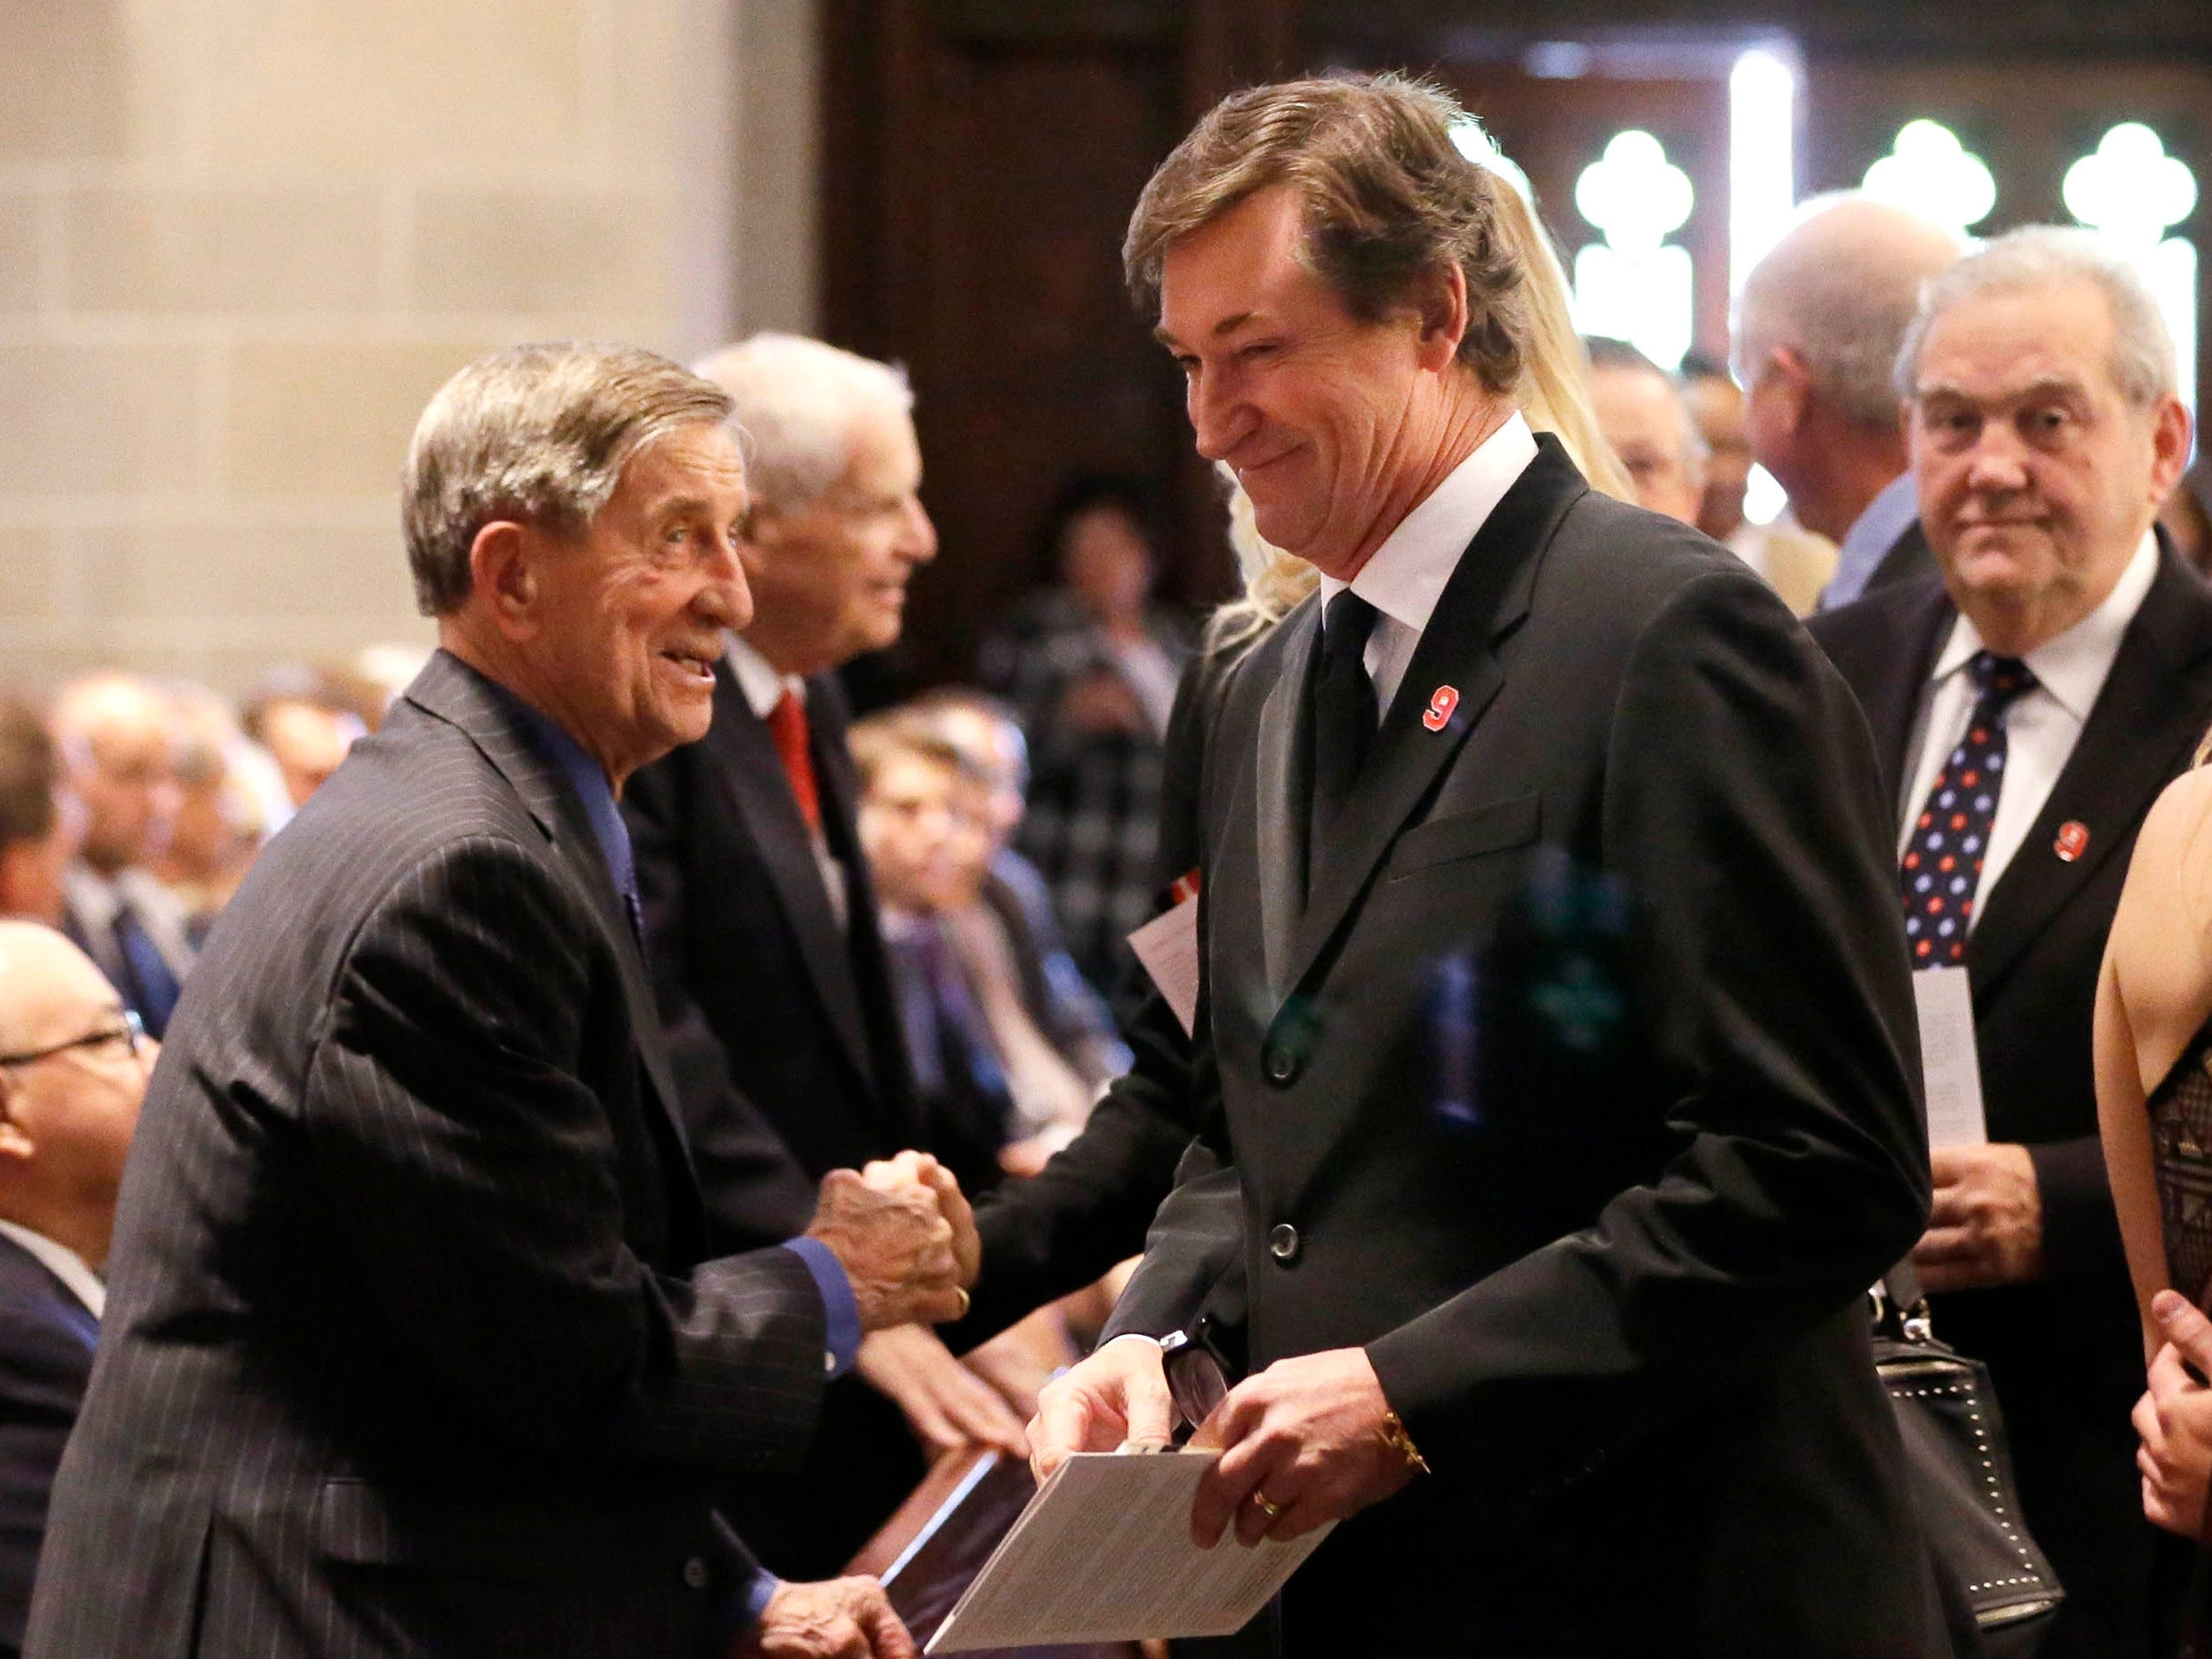 Ted Lindsay, left, greets Wayne Gretzky at the Cathedral of the Most Blessed Sacrament before the funeral for hockey legend Gordie Howe, Wednesday, June 15, 2016 in Detroit.